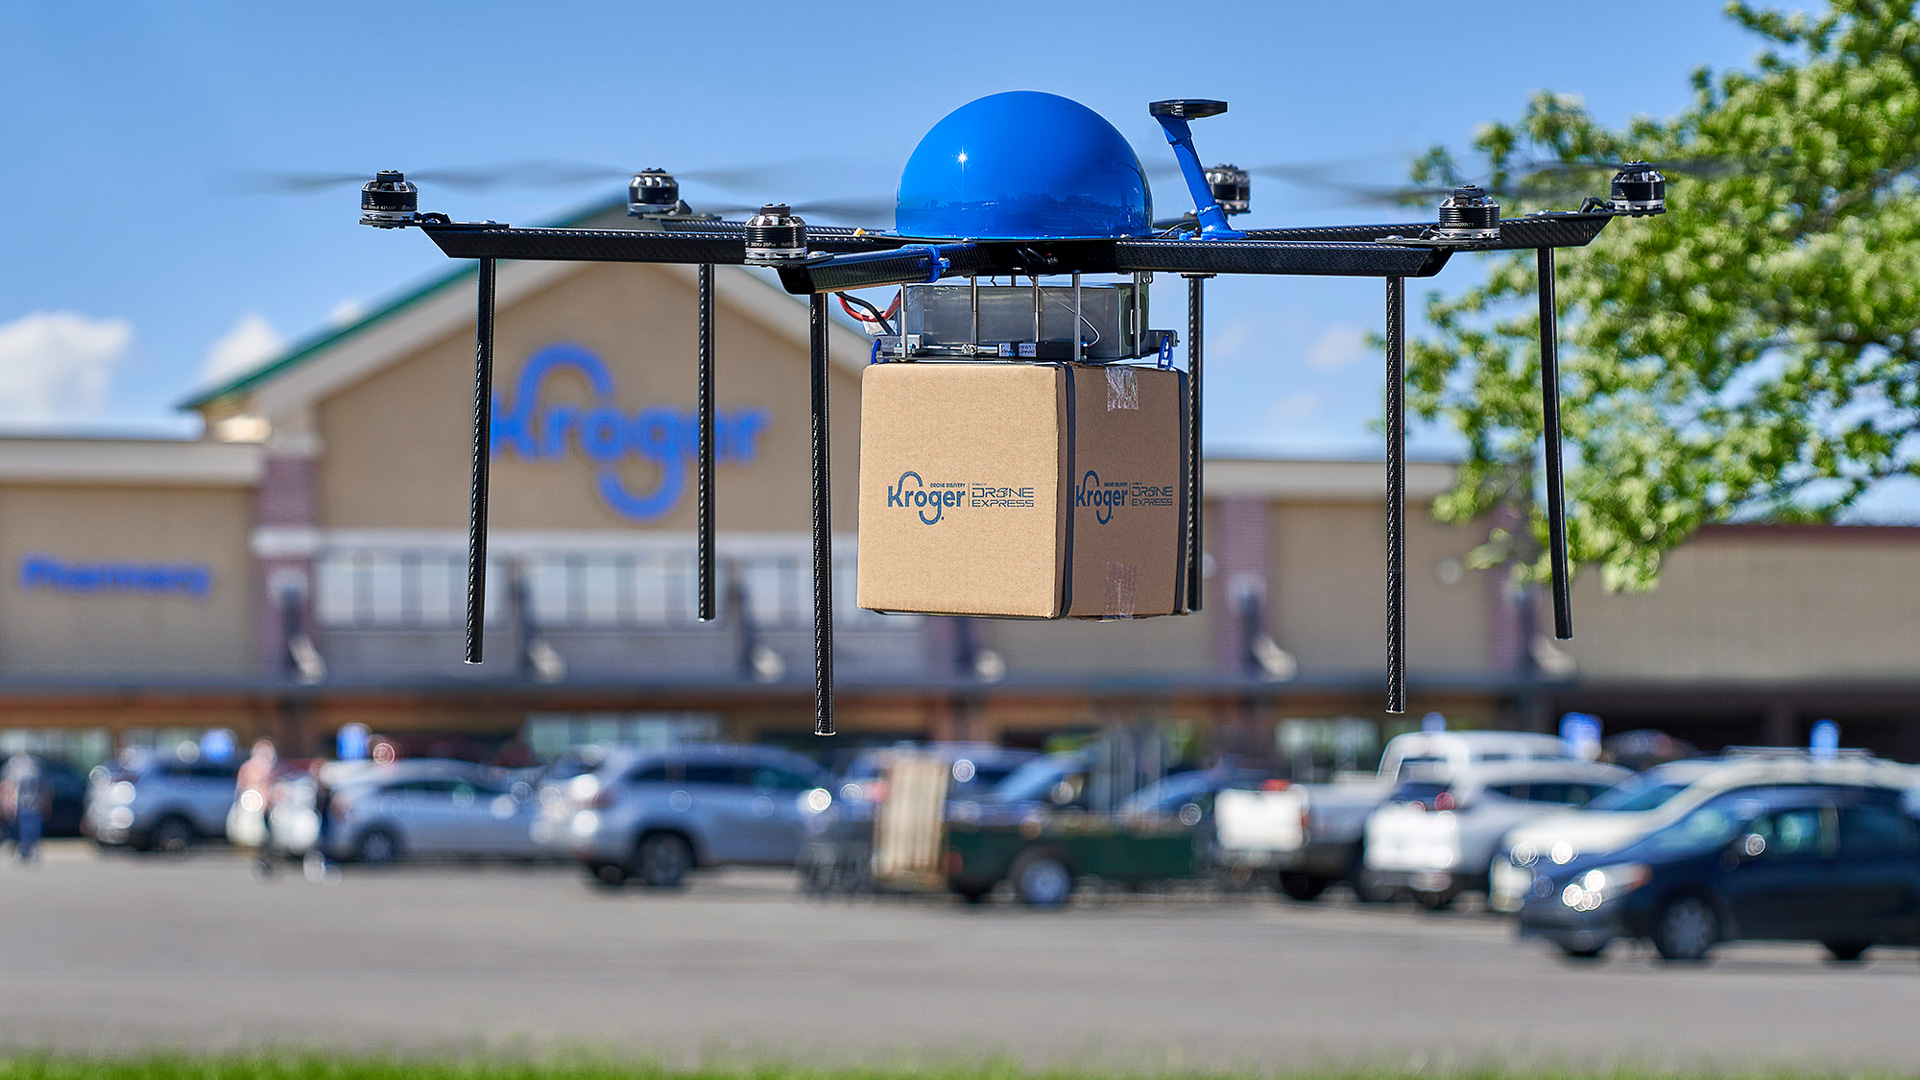 The retailer has partnered with Drone Express for pilot tests of the technology.